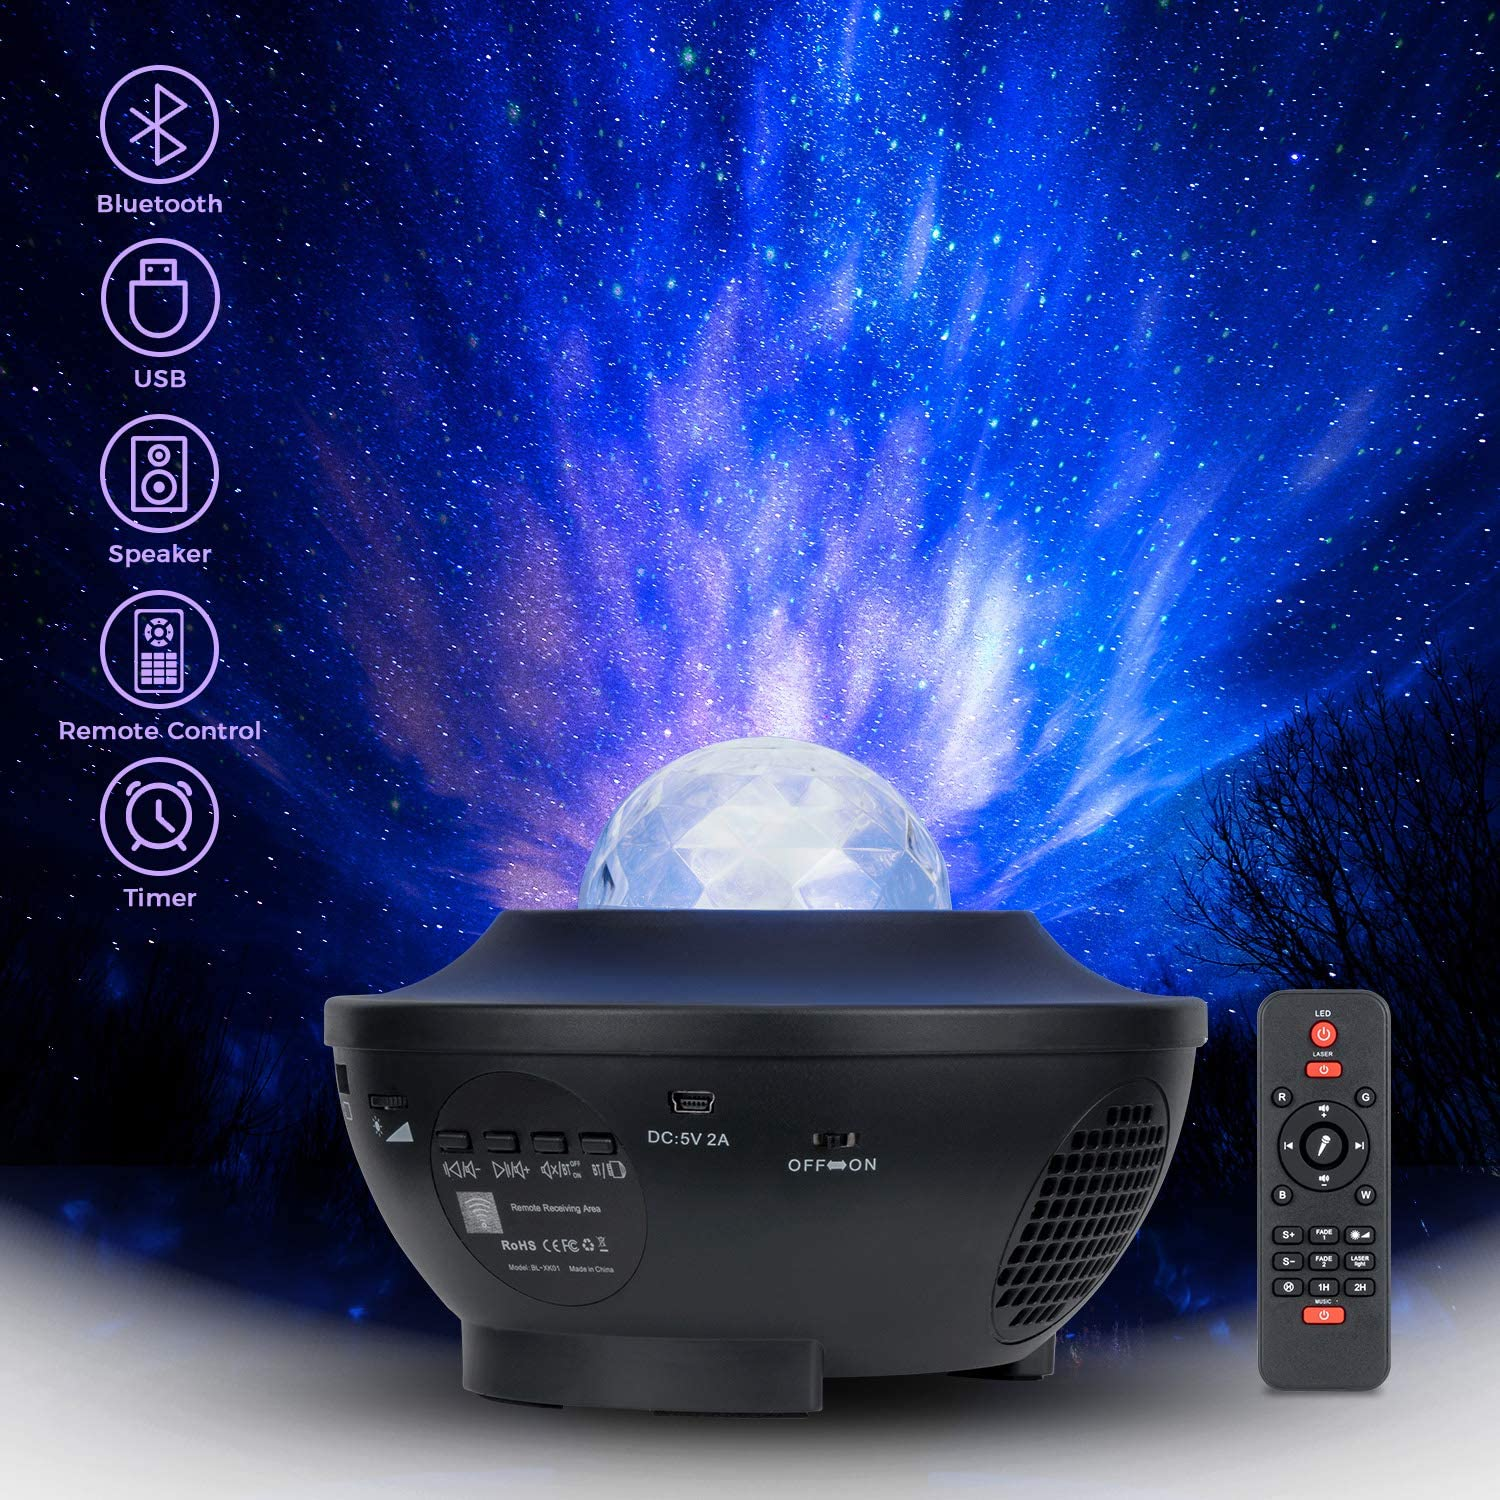 Galaxy Projector Star Projector Nebula Ocean Wave Projector Starry Night Light Projector Laser Star Light Projector for Bedroom with Bluetooth Speaker and Remote Control